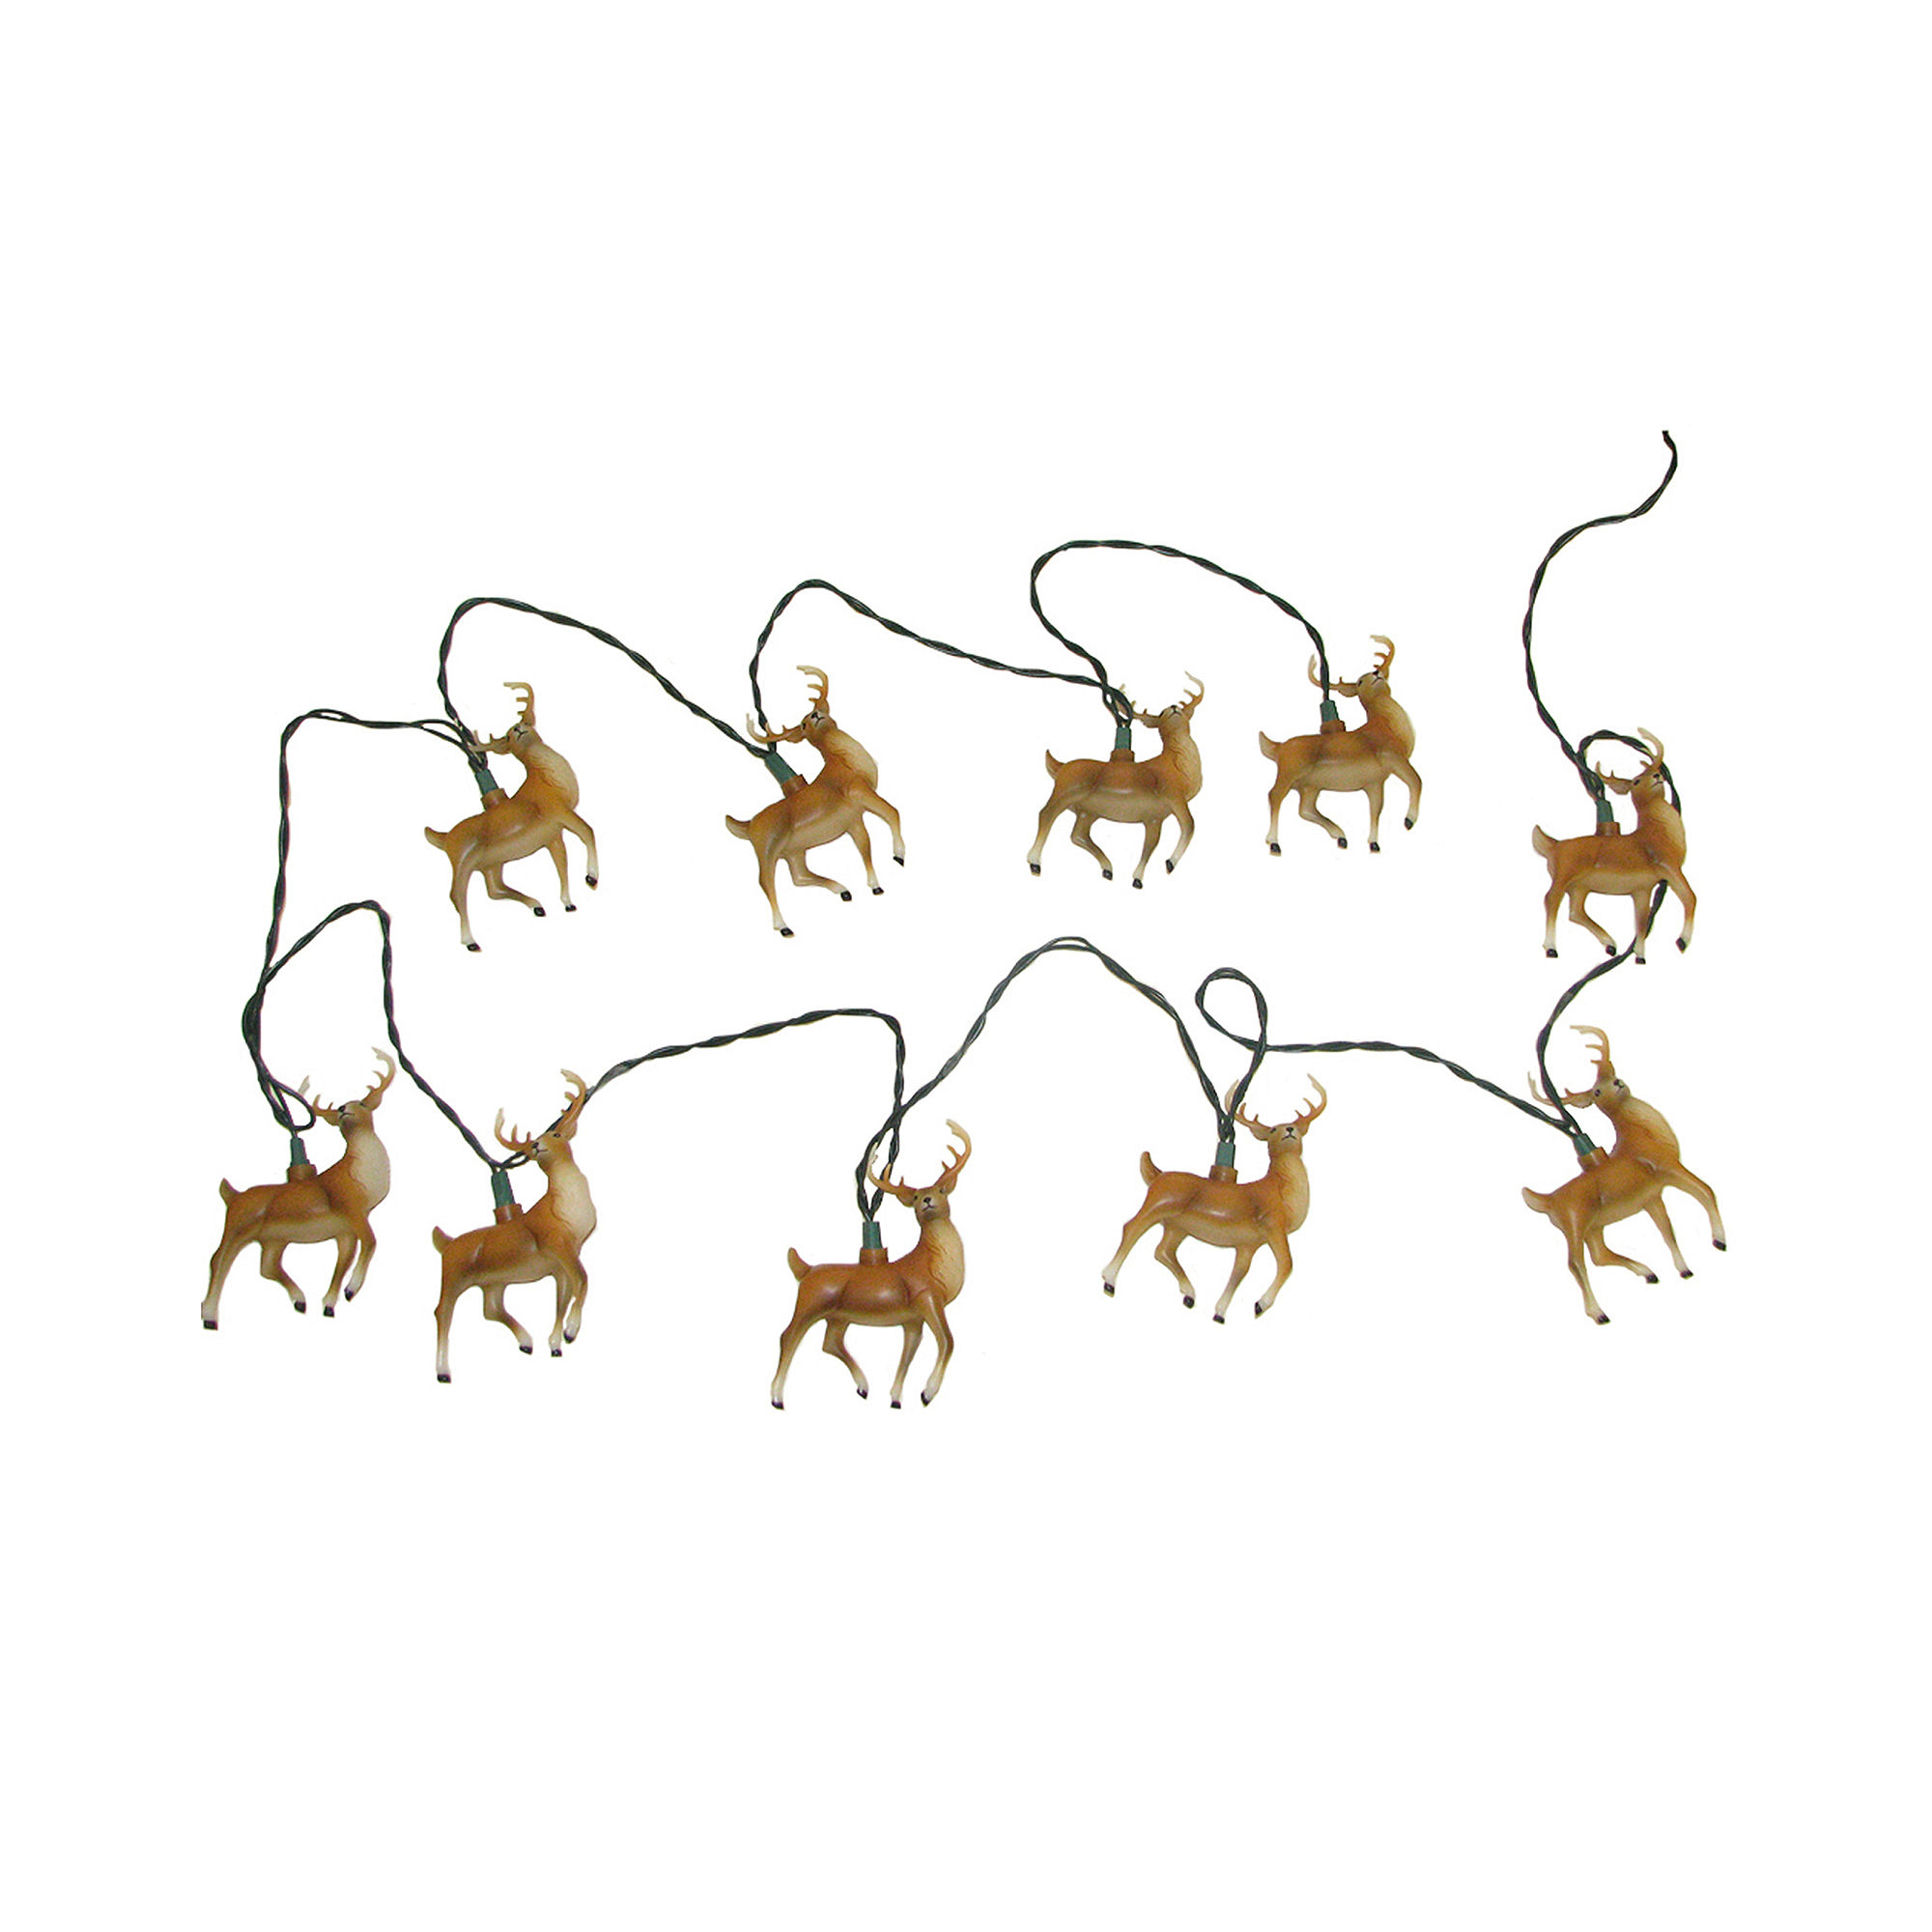 UPC 086131265549 product image for Kurt Adler 10-Light Plastic Reindeer Light Set | upcitemdb.com